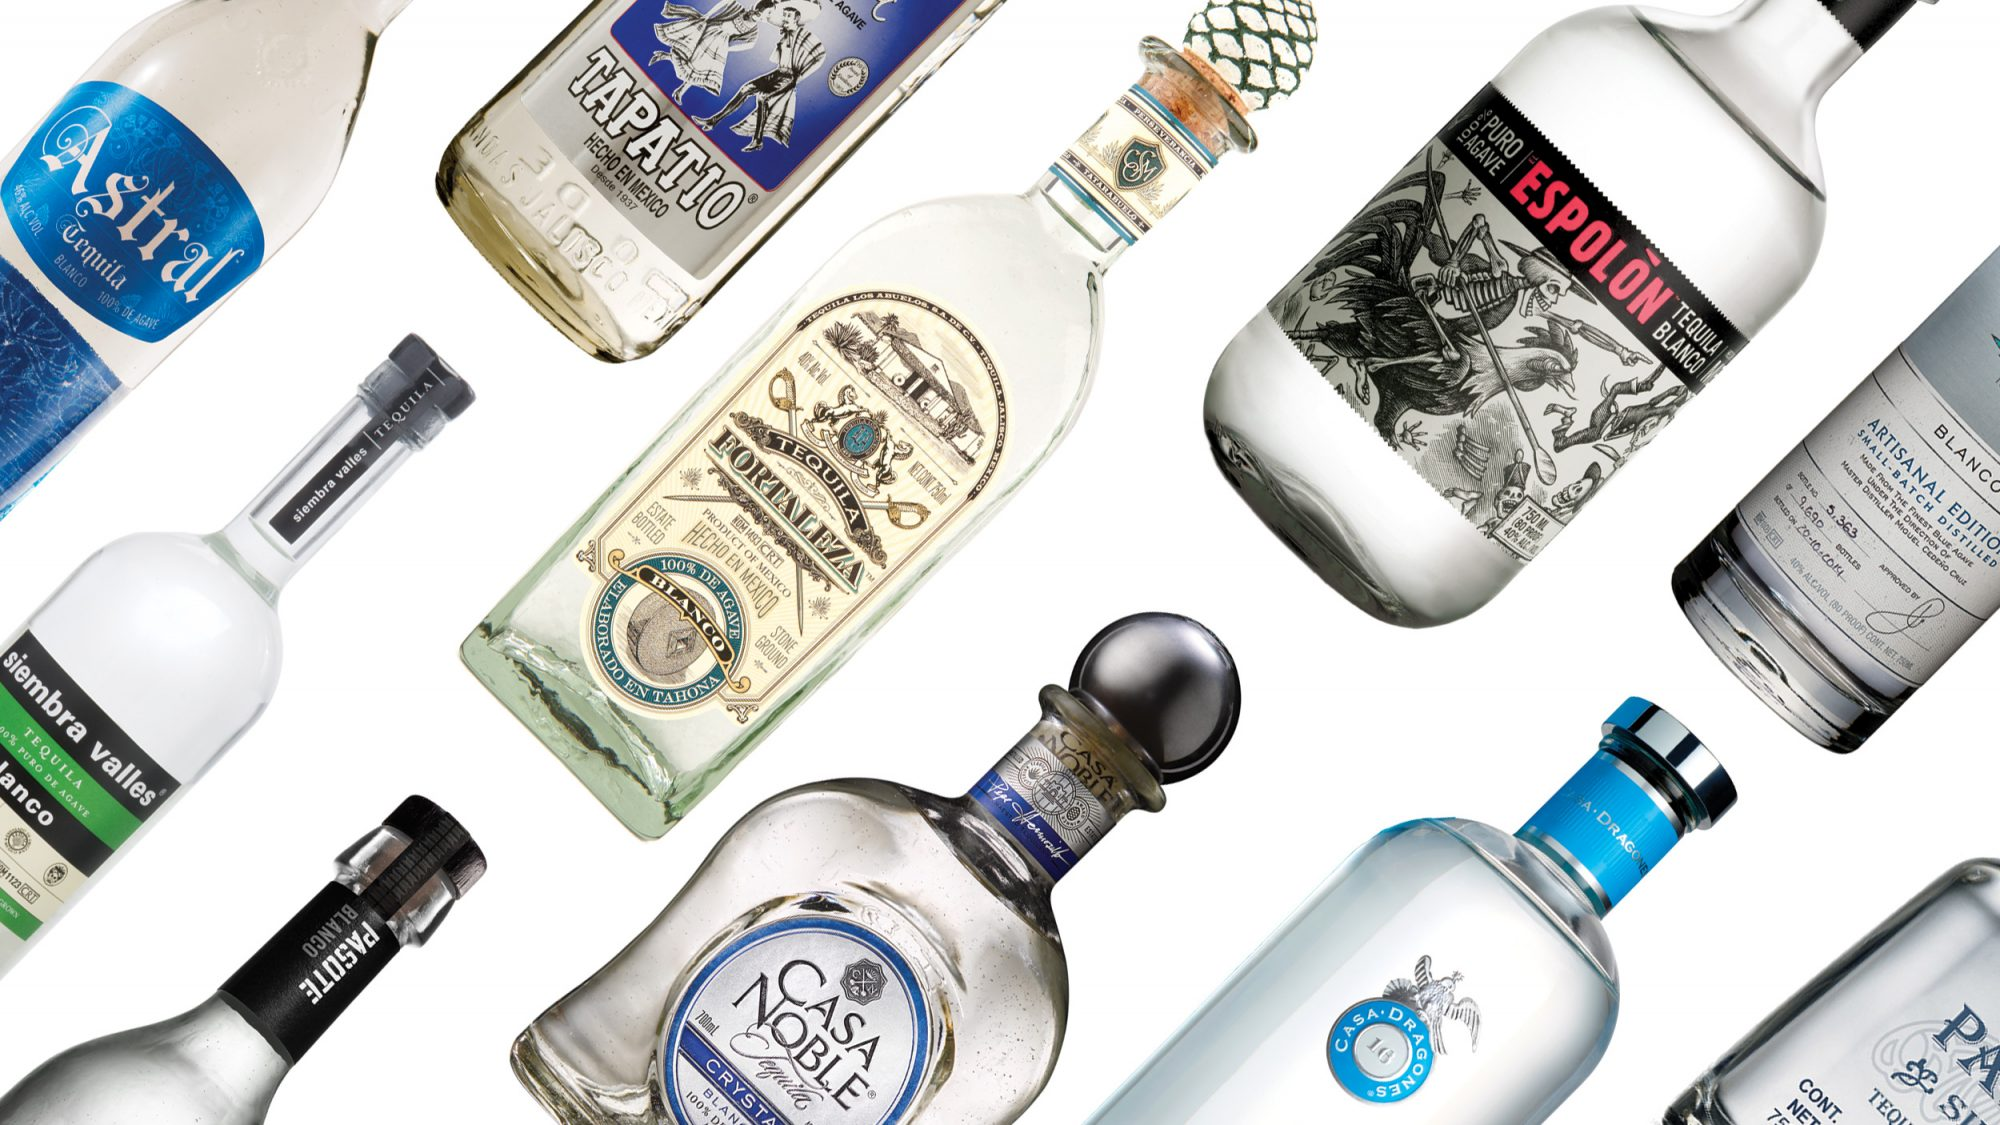 Top 10 Blanco Tequilas